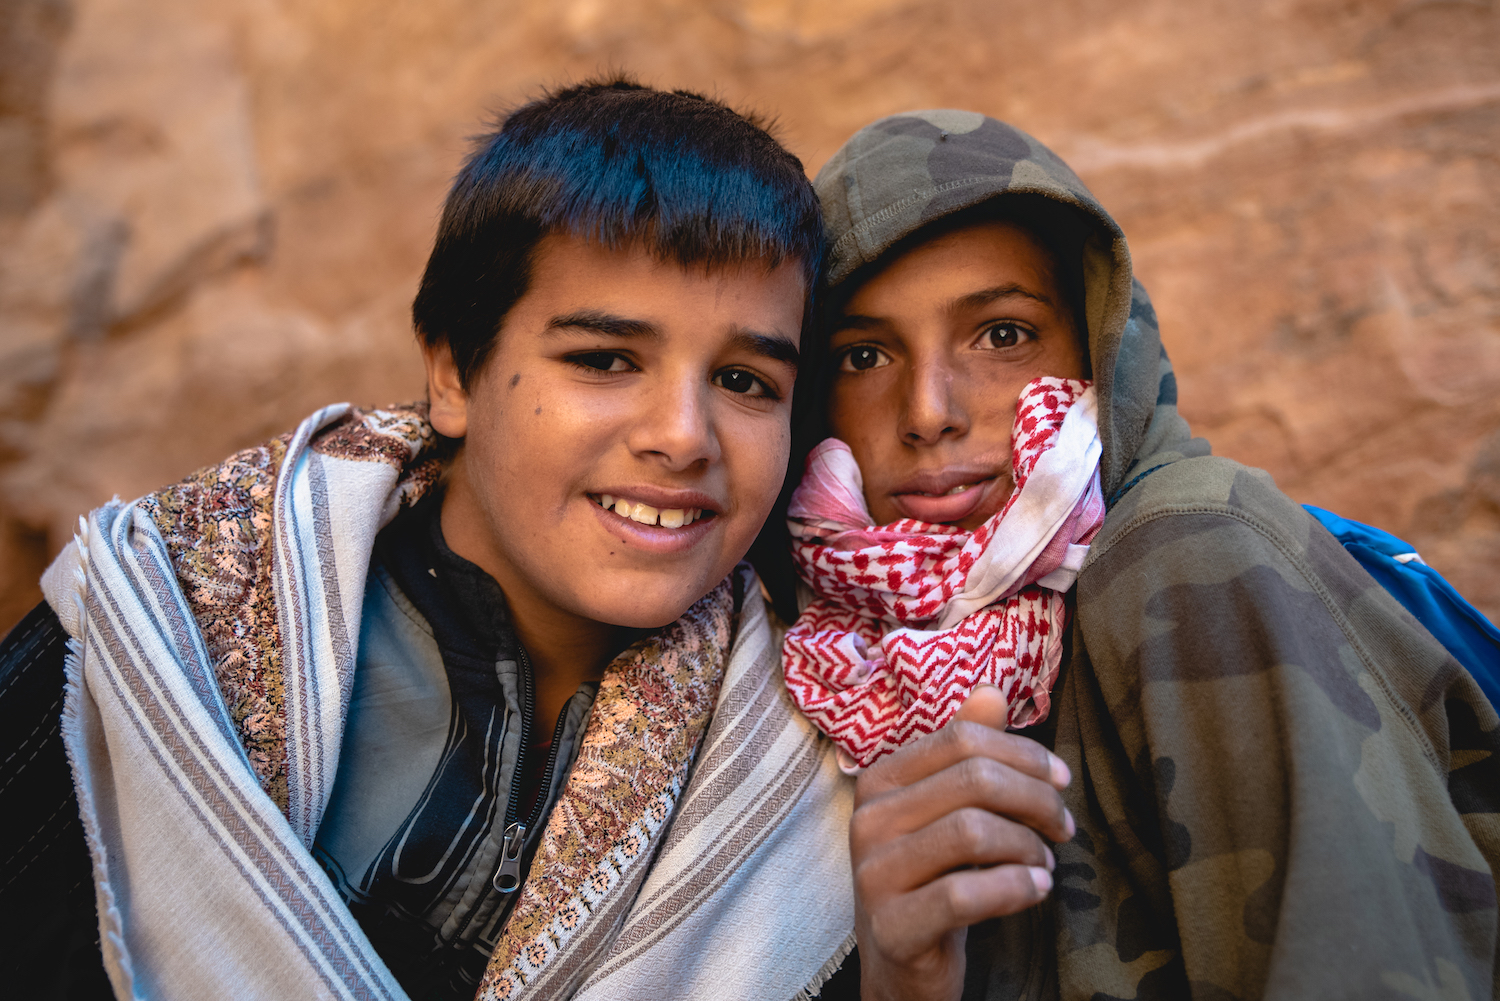 Muhammed and Ali. Petra postcard sellers - by Ben Holbrook from DriftwoodJournals.com